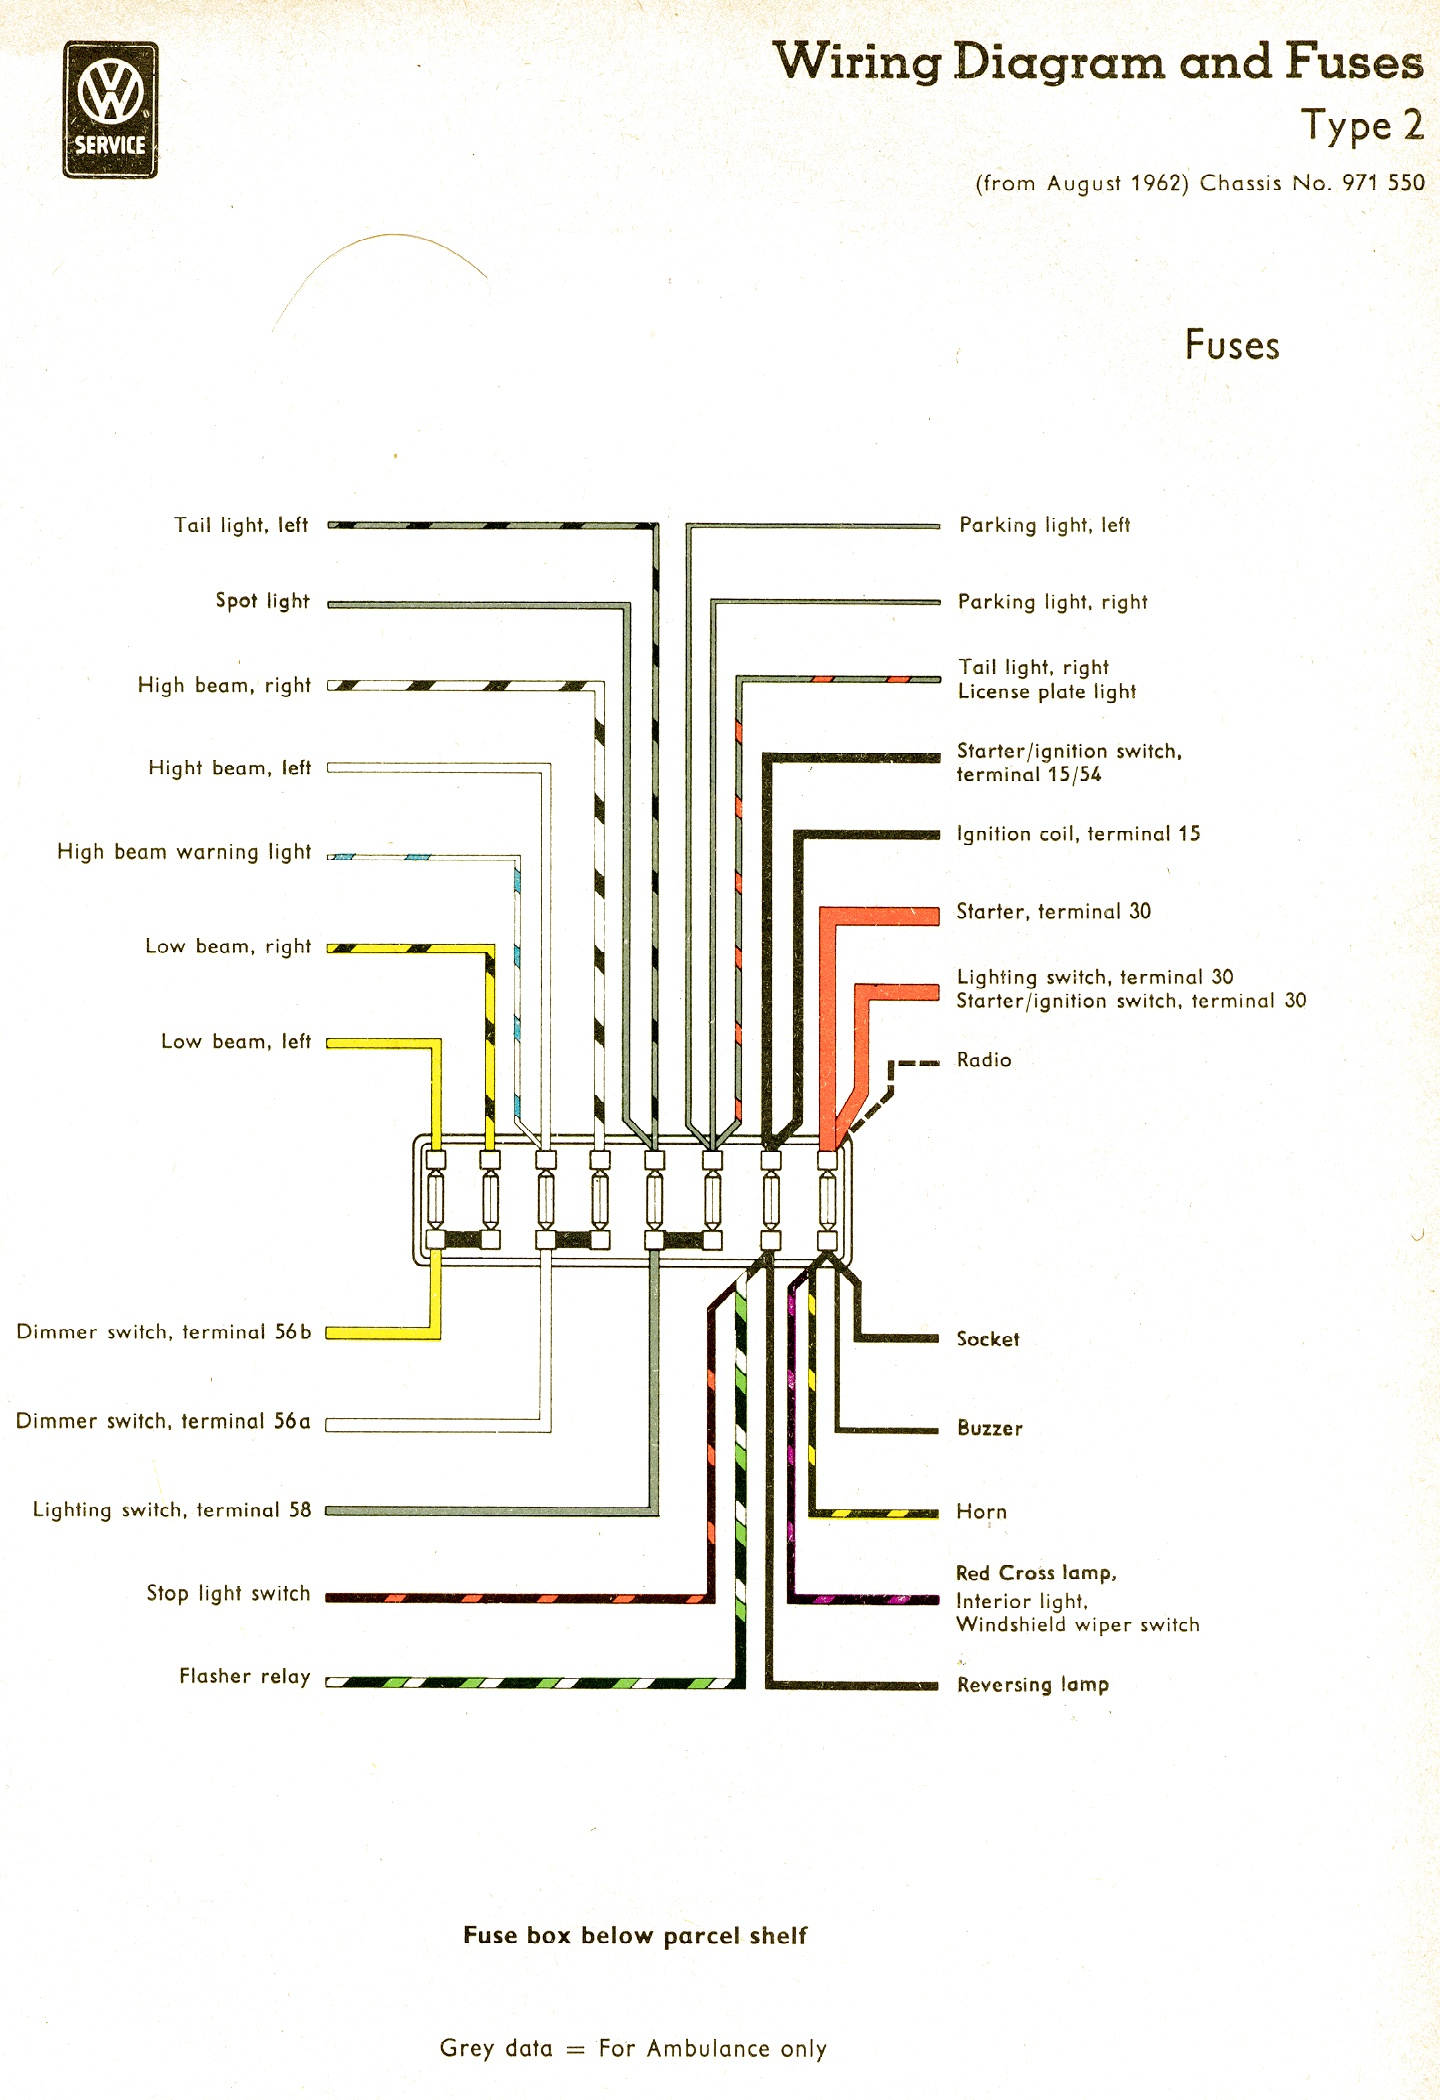 74 Beetle Fuse Box Wiring Diagram Guide And Troubleshooting Of 1971 Vw Alternator Diagrams Rh Volkspower Nl 73 77